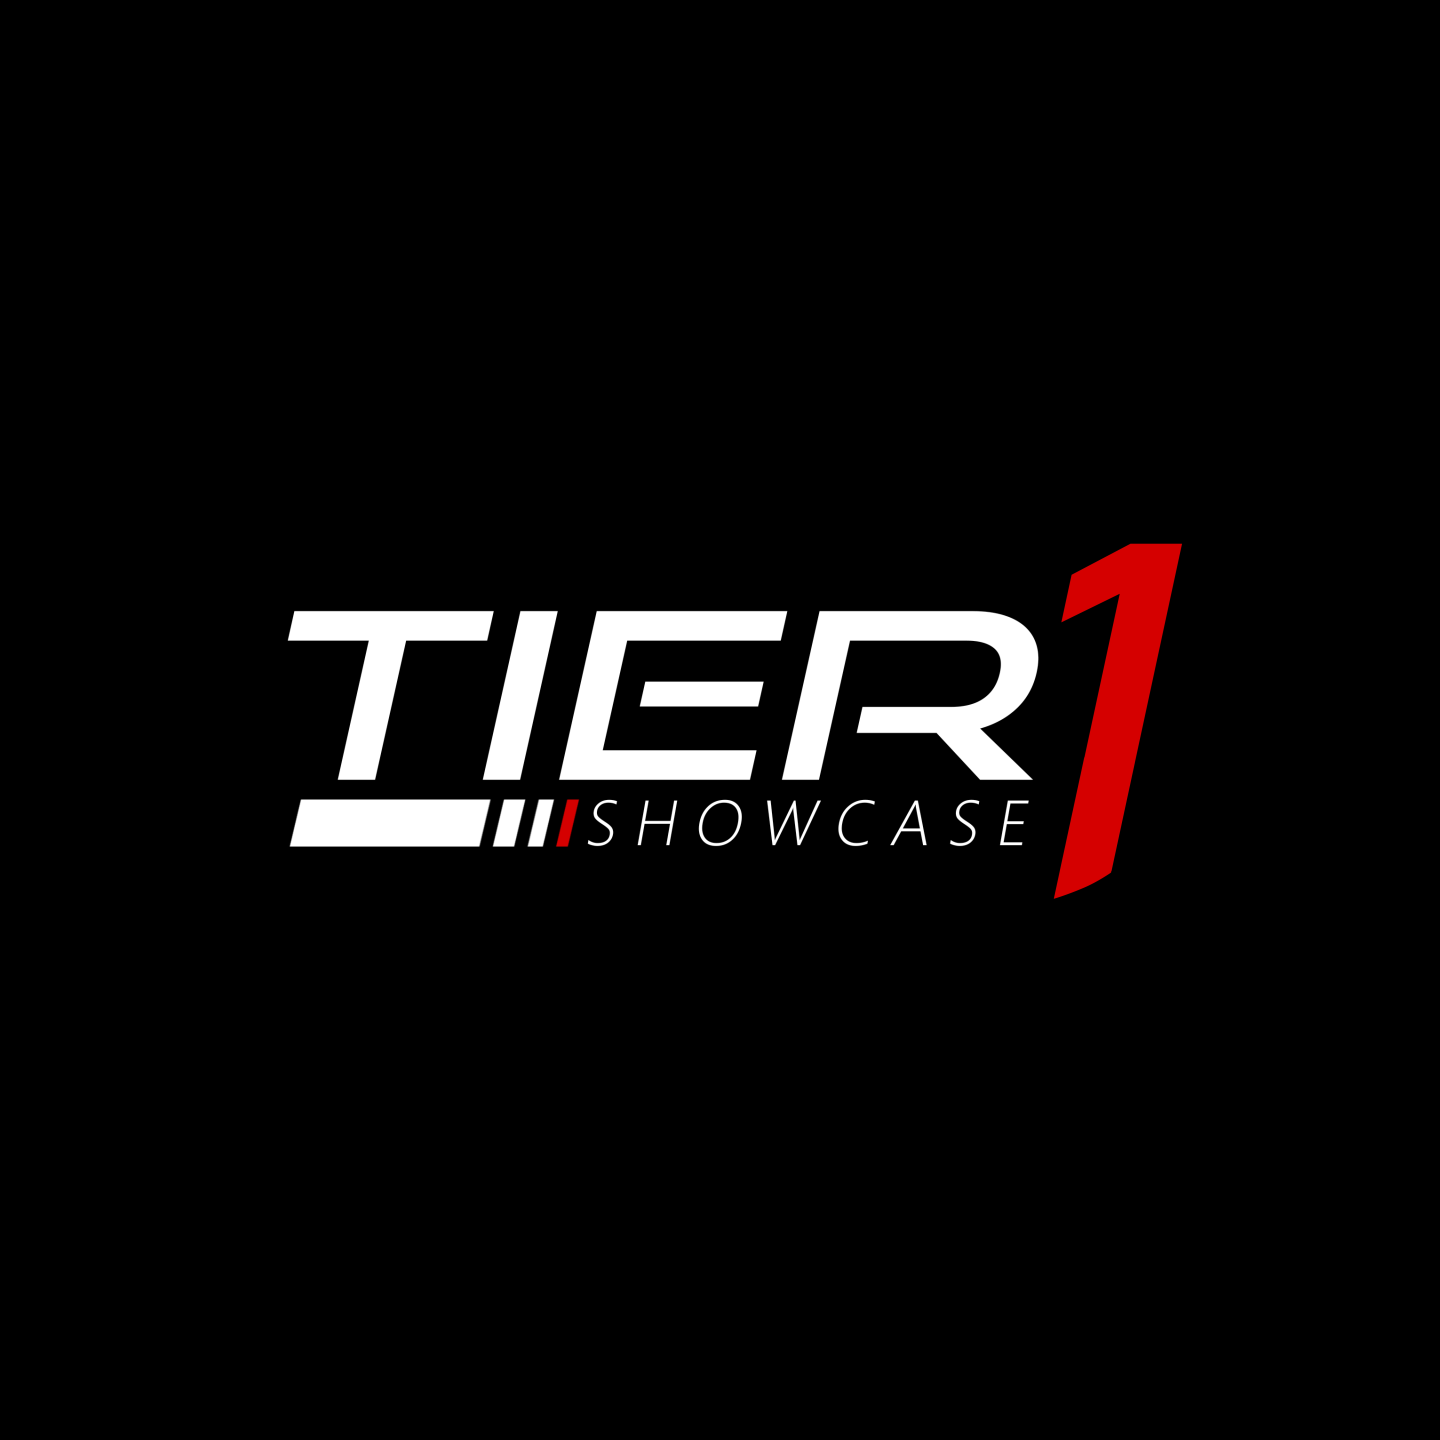 Tier 1 Showcase